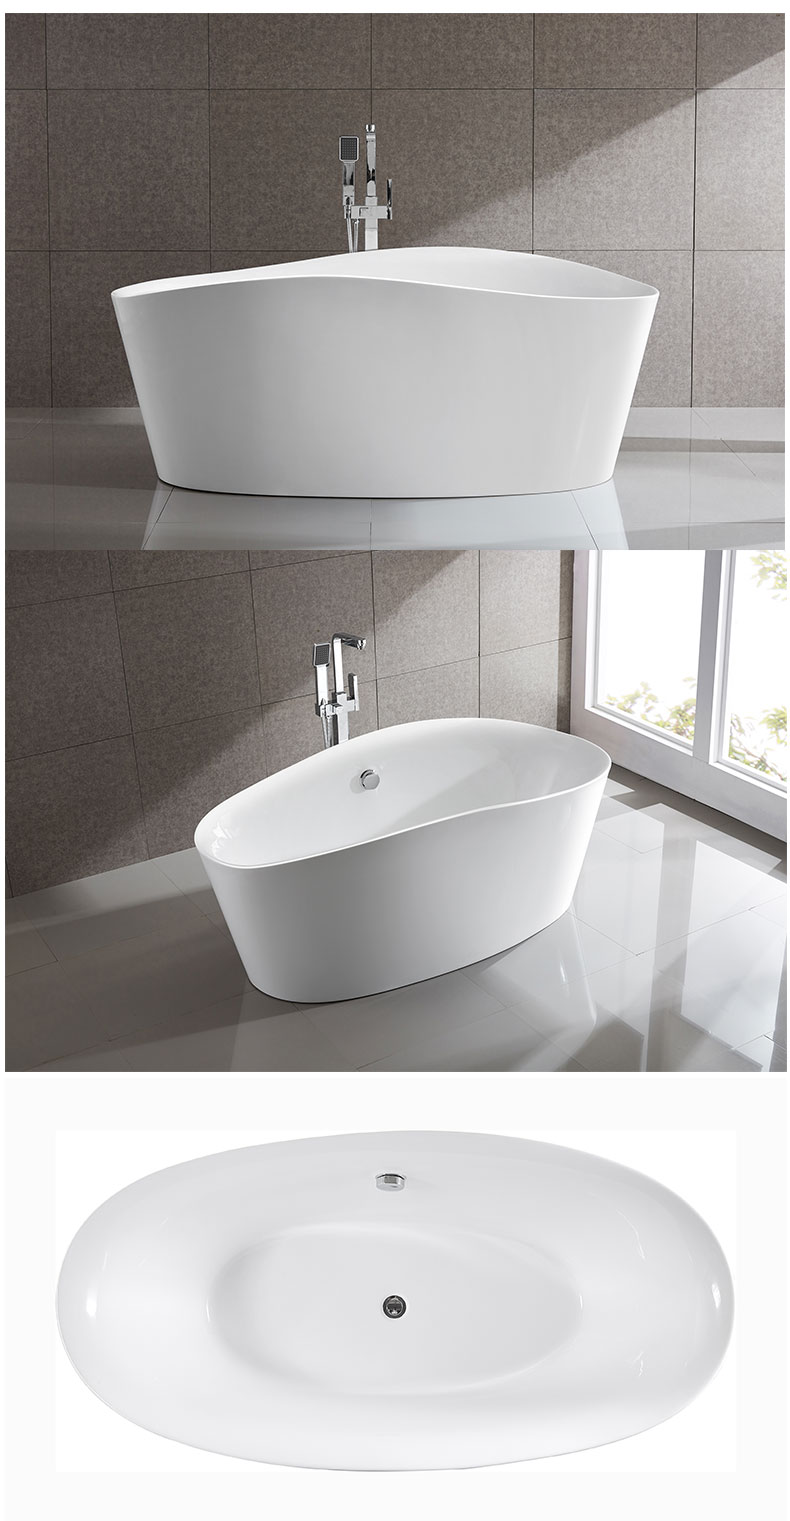 Freestanding tub for bathroom manufacturers